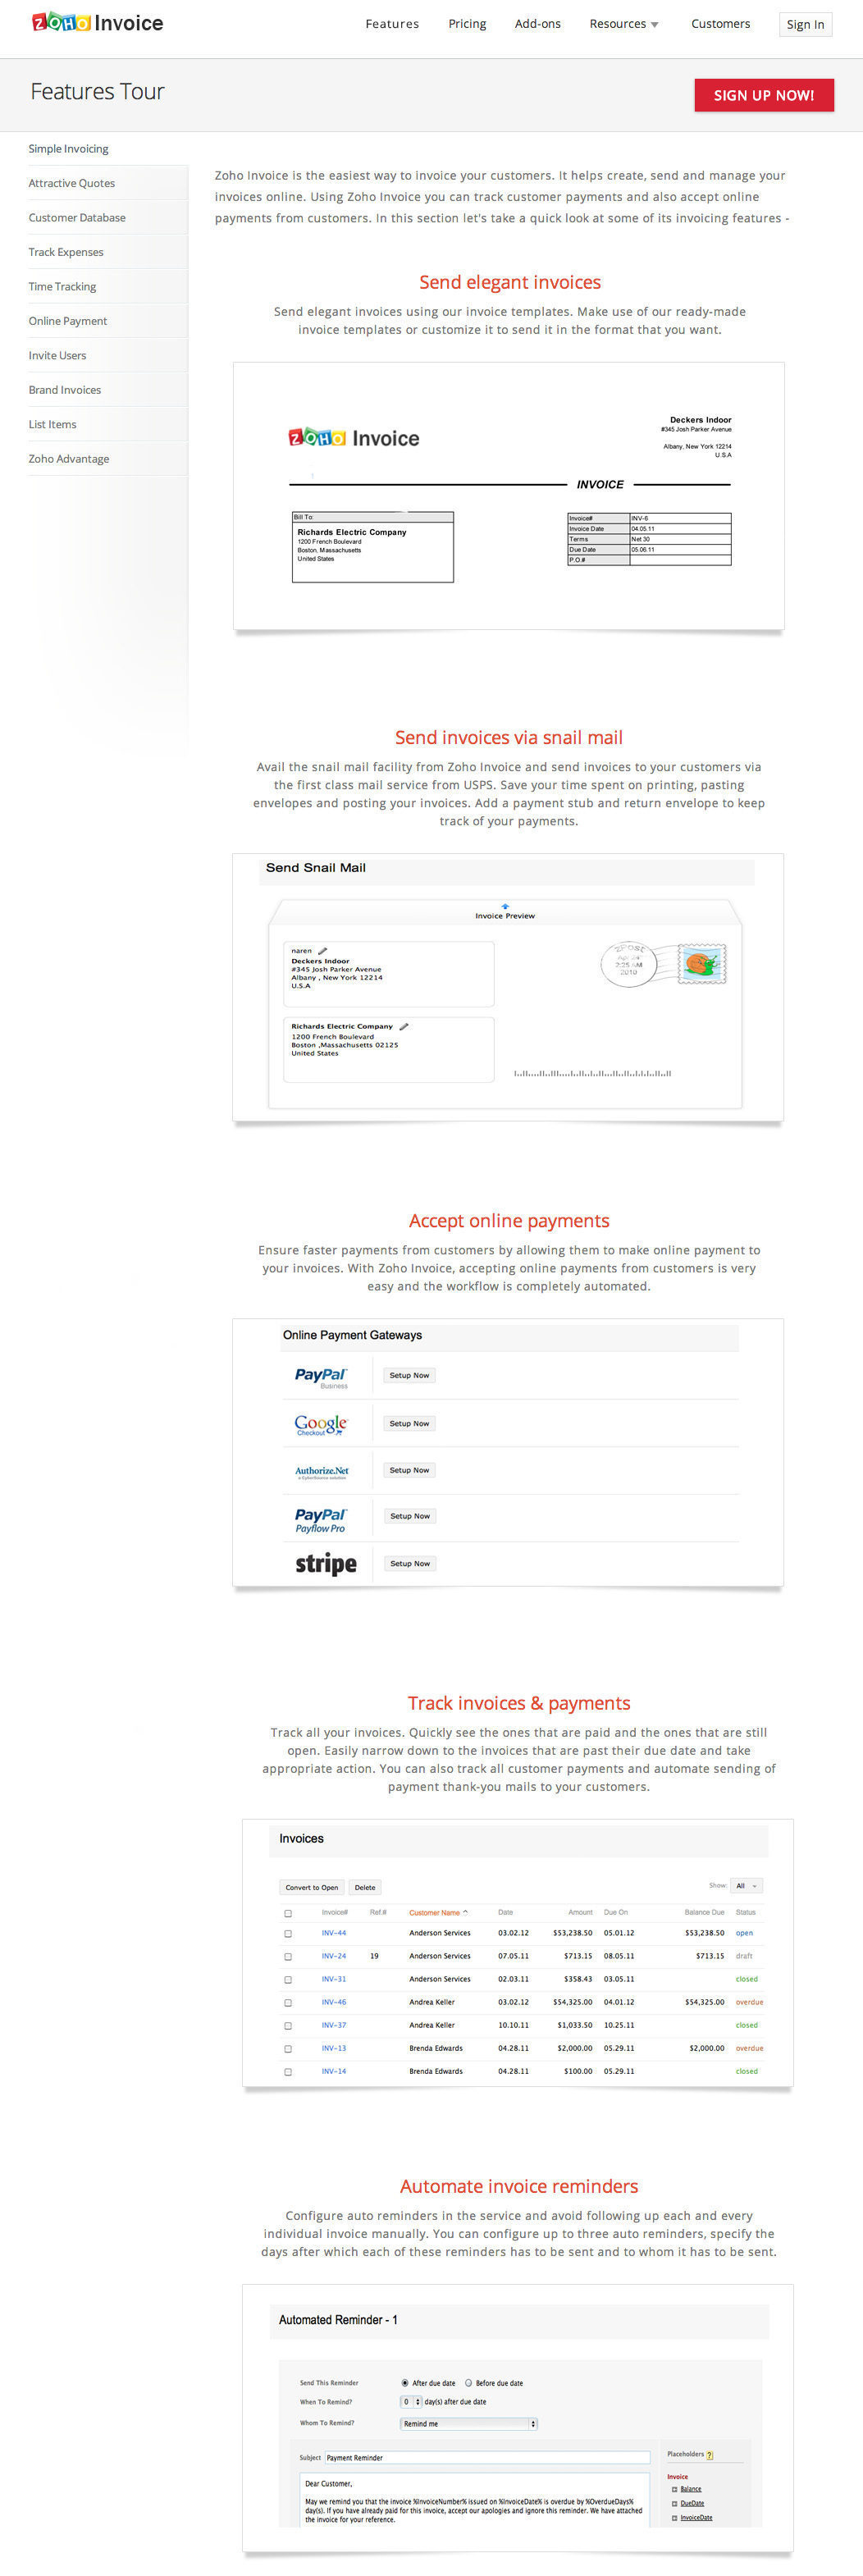 Shopdesignsus  Sweet Top  Complaints And Reviews About Zoho Invoice With Gorgeous Zoho Invoice Pricing Zoho Invoice  Simple Invoicing  With Alluring Invoice Receipt Template Free Also Company Invoice Template Word In Addition Third Party Invoice And Invoice Templates Doc As Well As Cash Invoice Format Additionally Invoices Template Free From Consumeraffairscom With Shopdesignsus  Gorgeous Top  Complaints And Reviews About Zoho Invoice With Alluring Zoho Invoice Pricing Zoho Invoice  Simple Invoicing  And Sweet Invoice Receipt Template Free Also Company Invoice Template Word In Addition Third Party Invoice From Consumeraffairscom